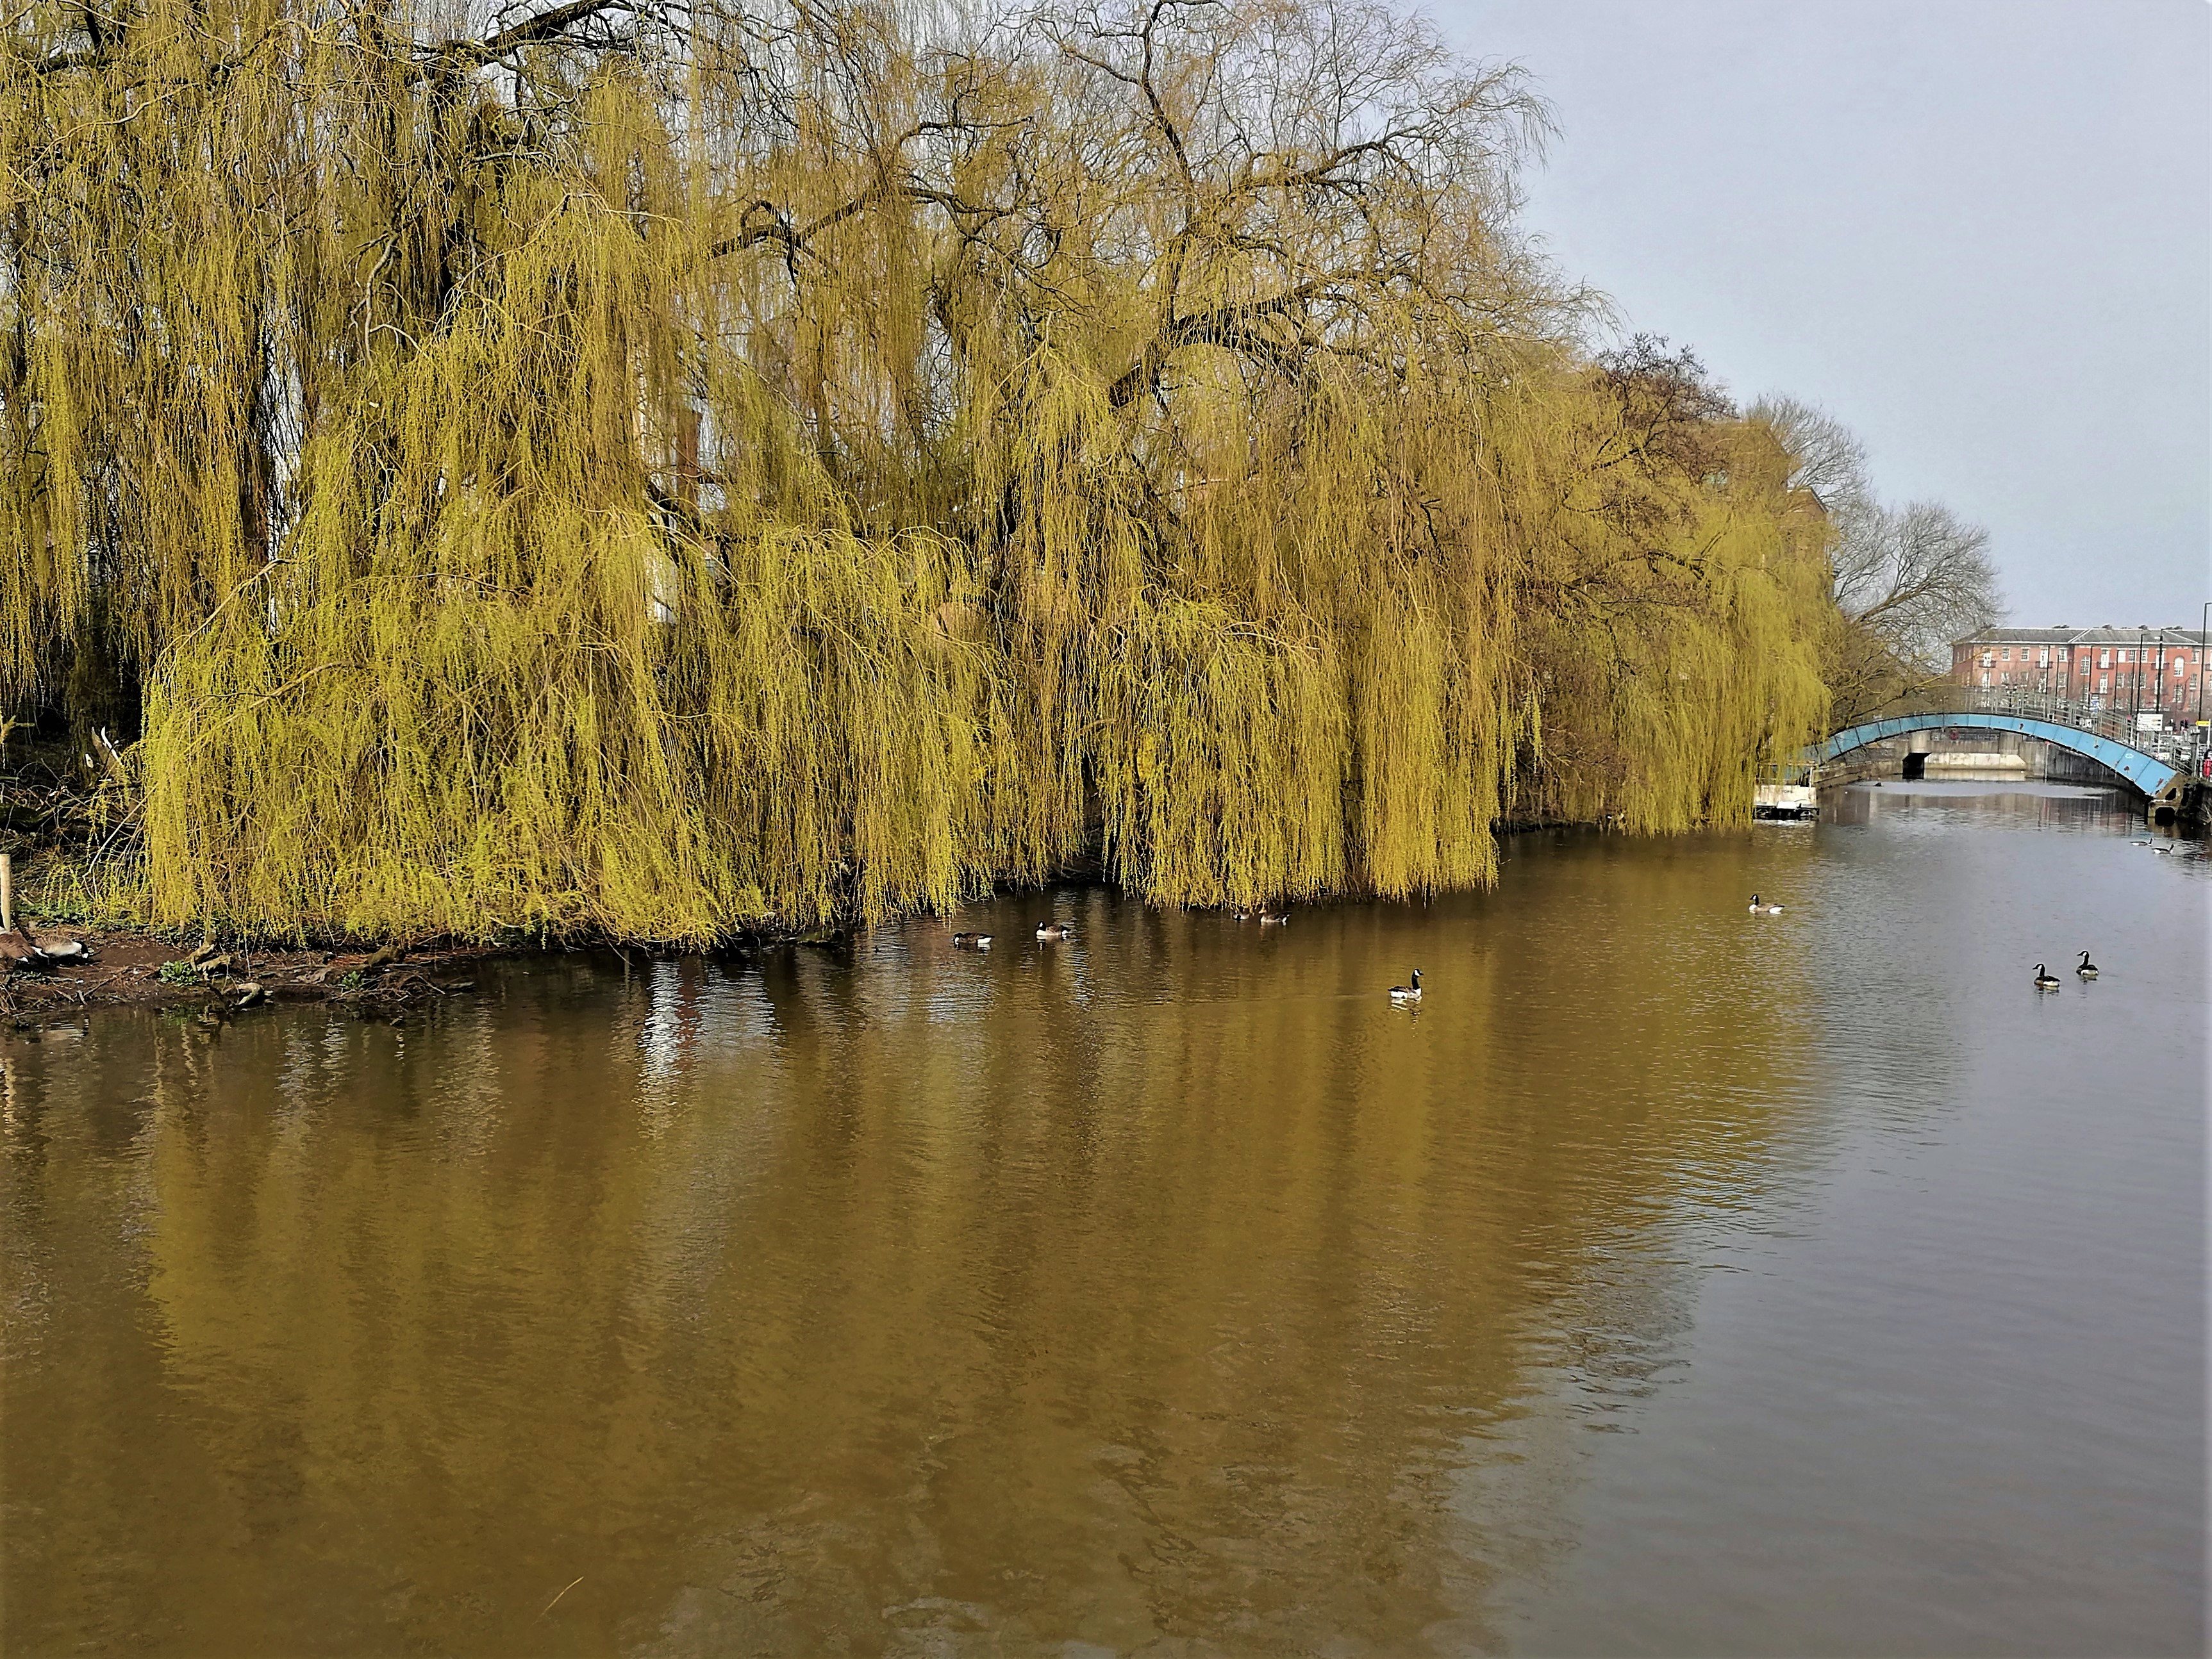 Weeping willow by the Foss